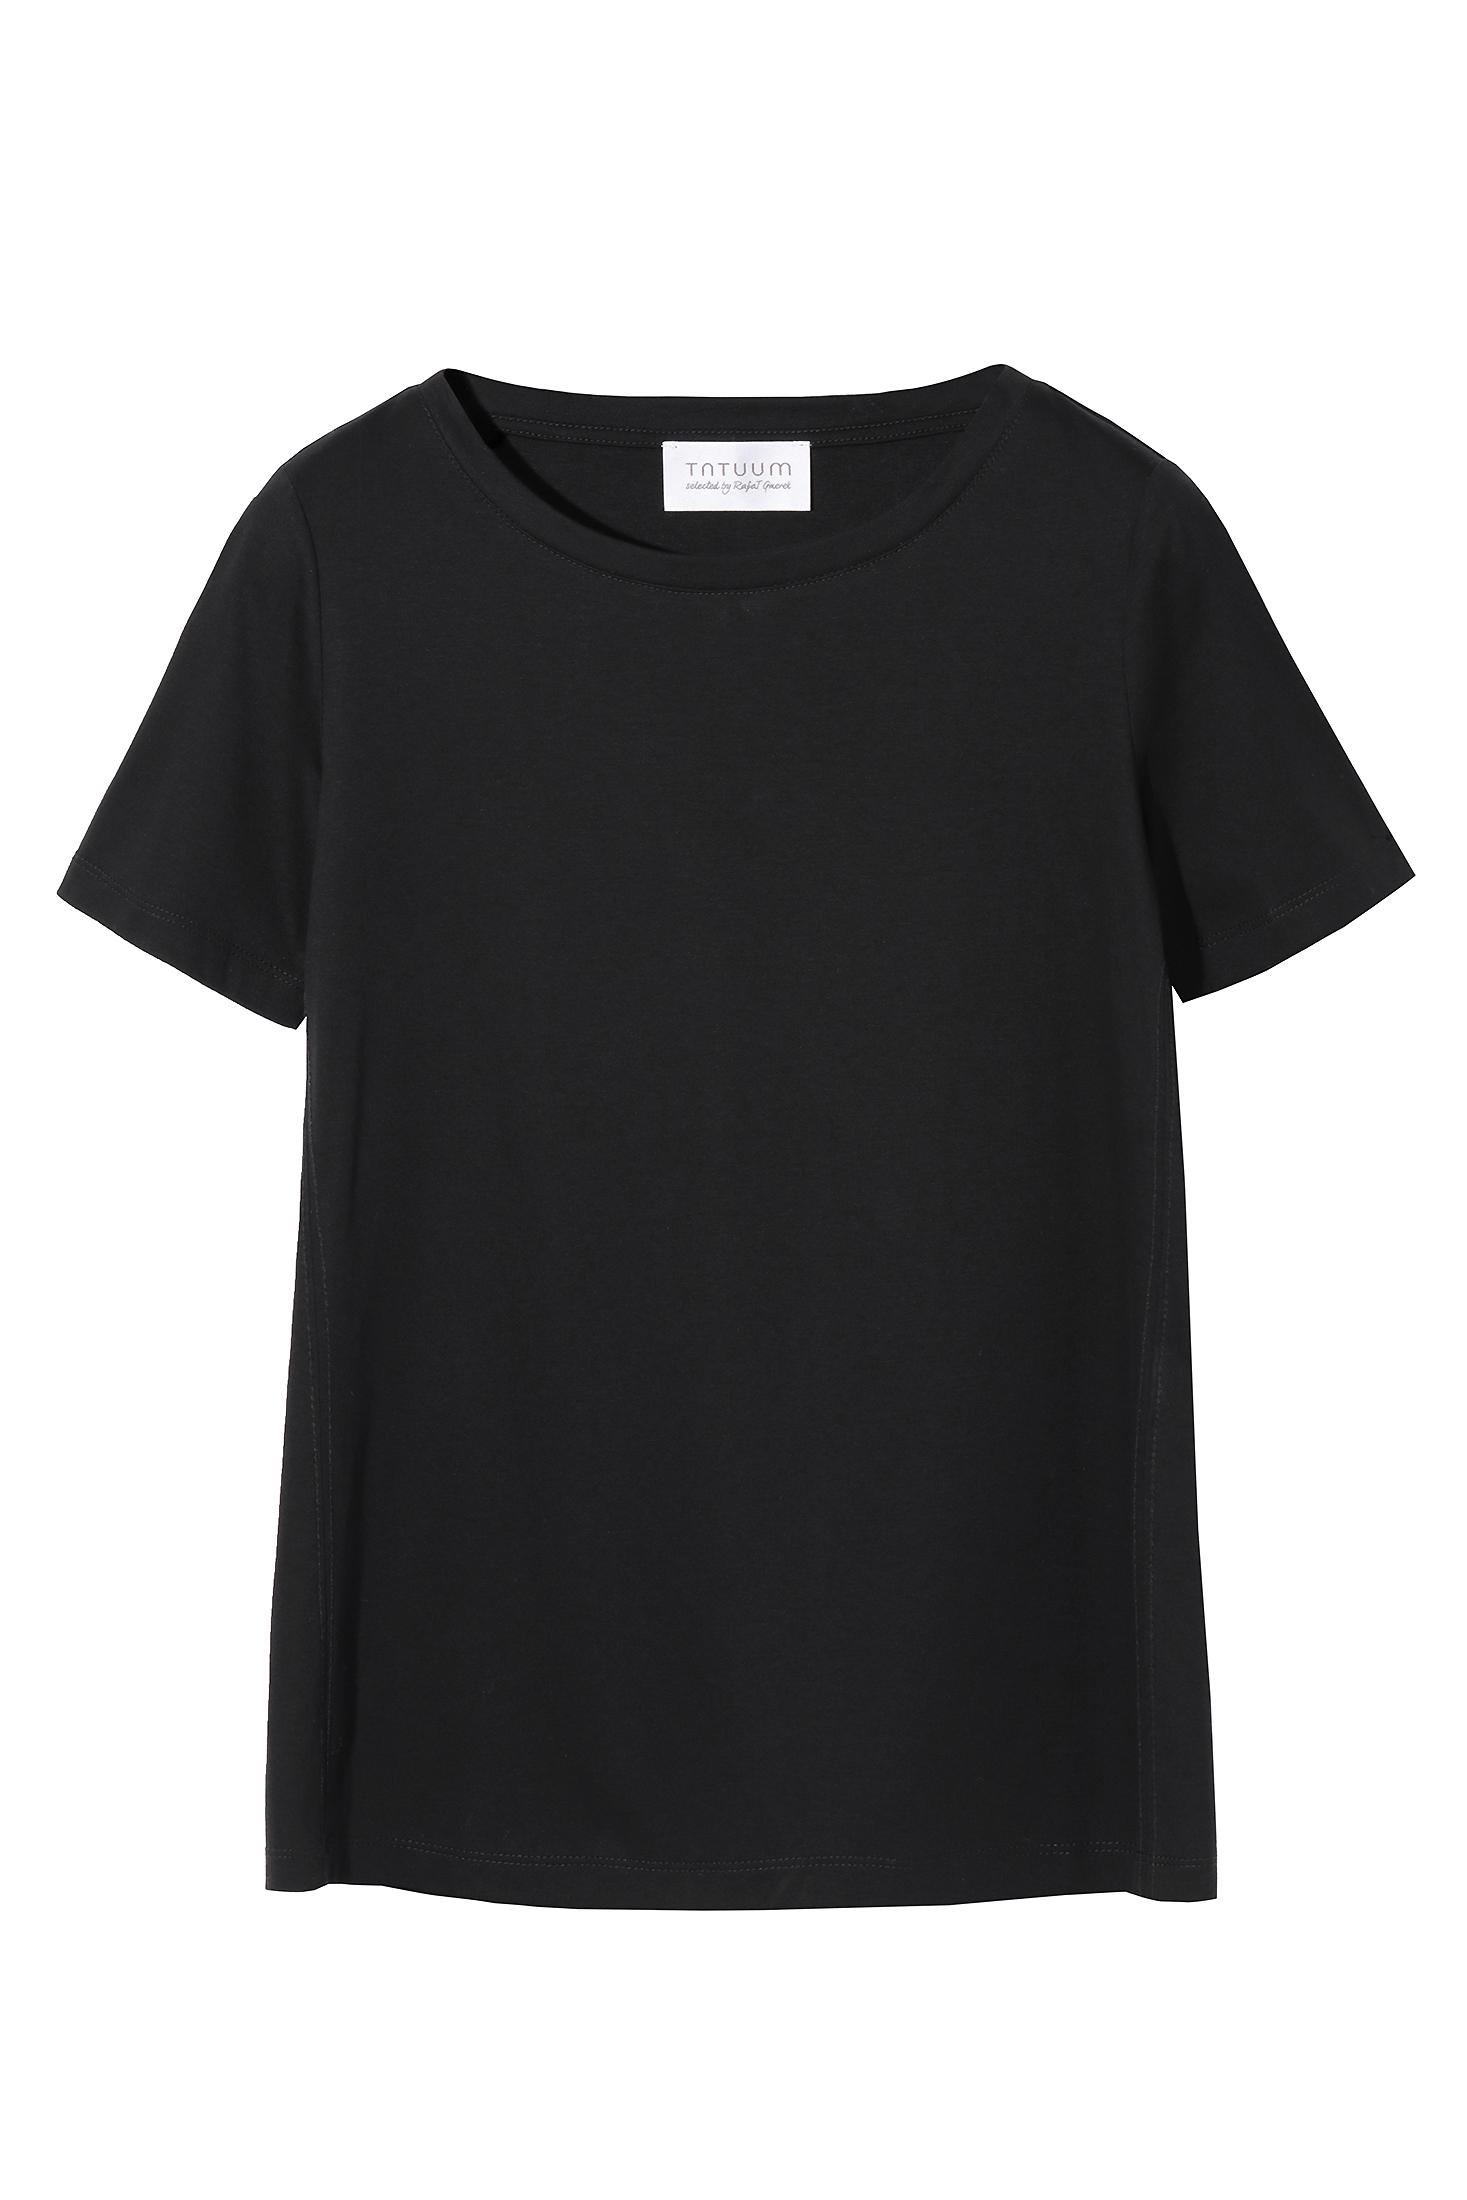 T-SHIRT WITH CLASSIC FORM - SELECTED LOTMIA